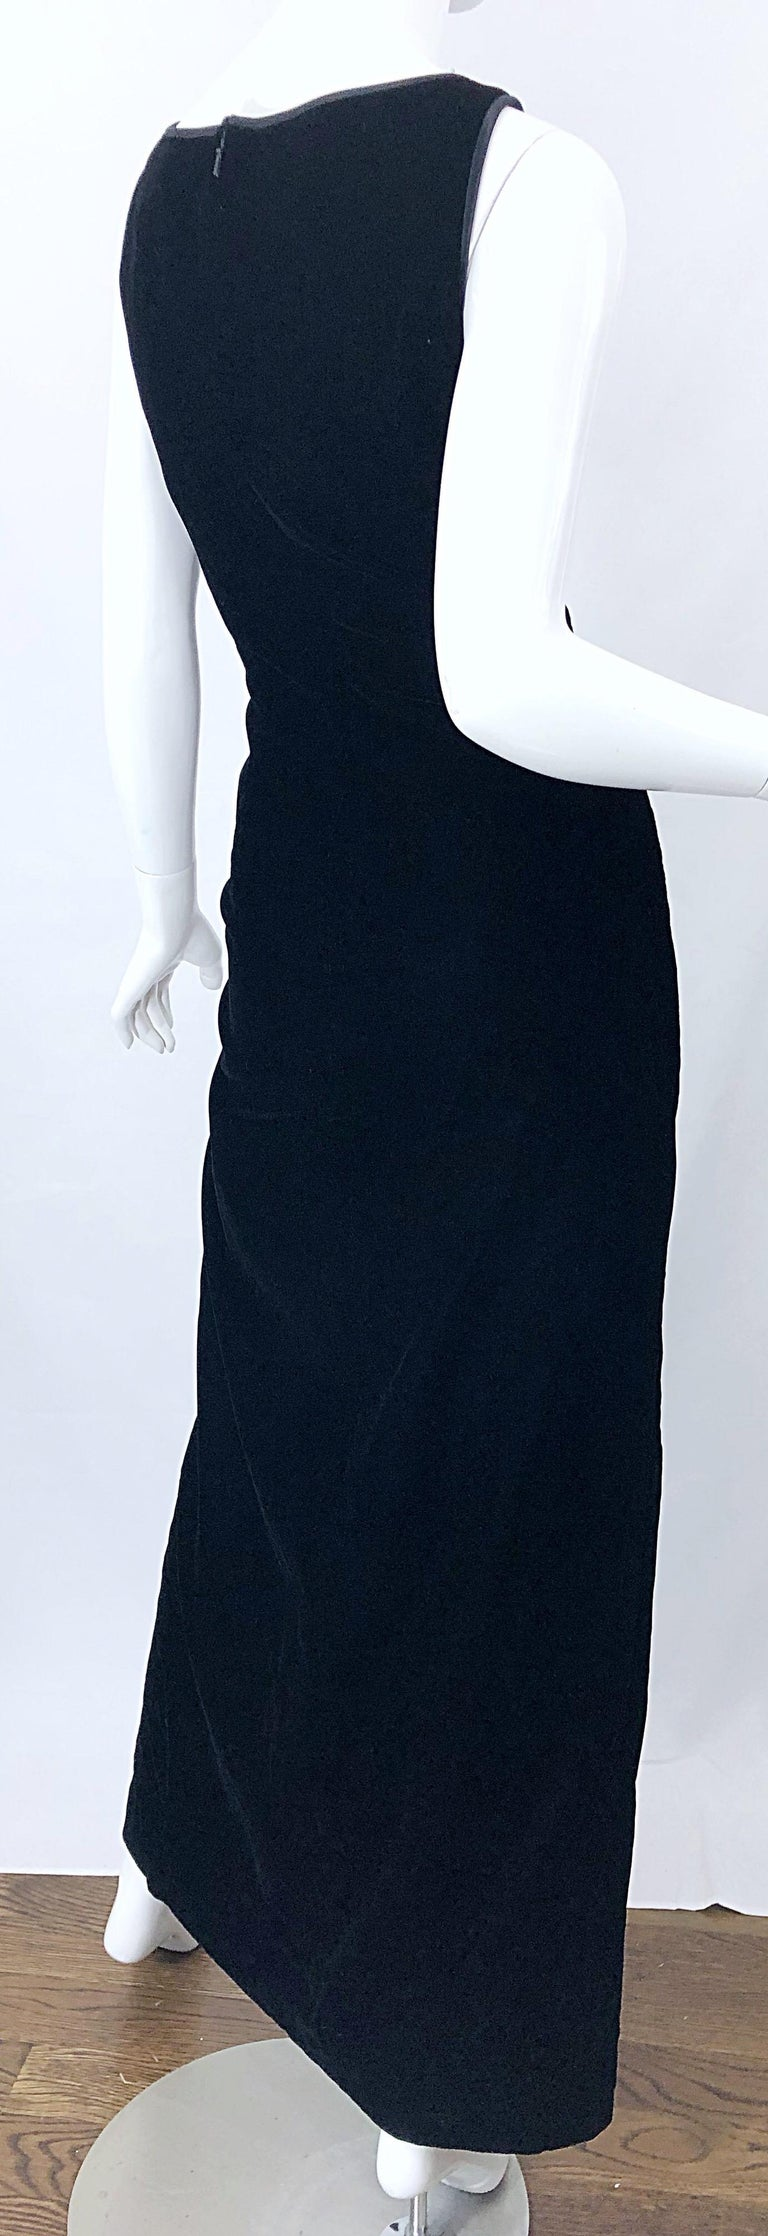 Vintage Bob Mackie Size 14 Black Velvet 1990s Sleeveless Sweetheart 90s Gown For Sale 6